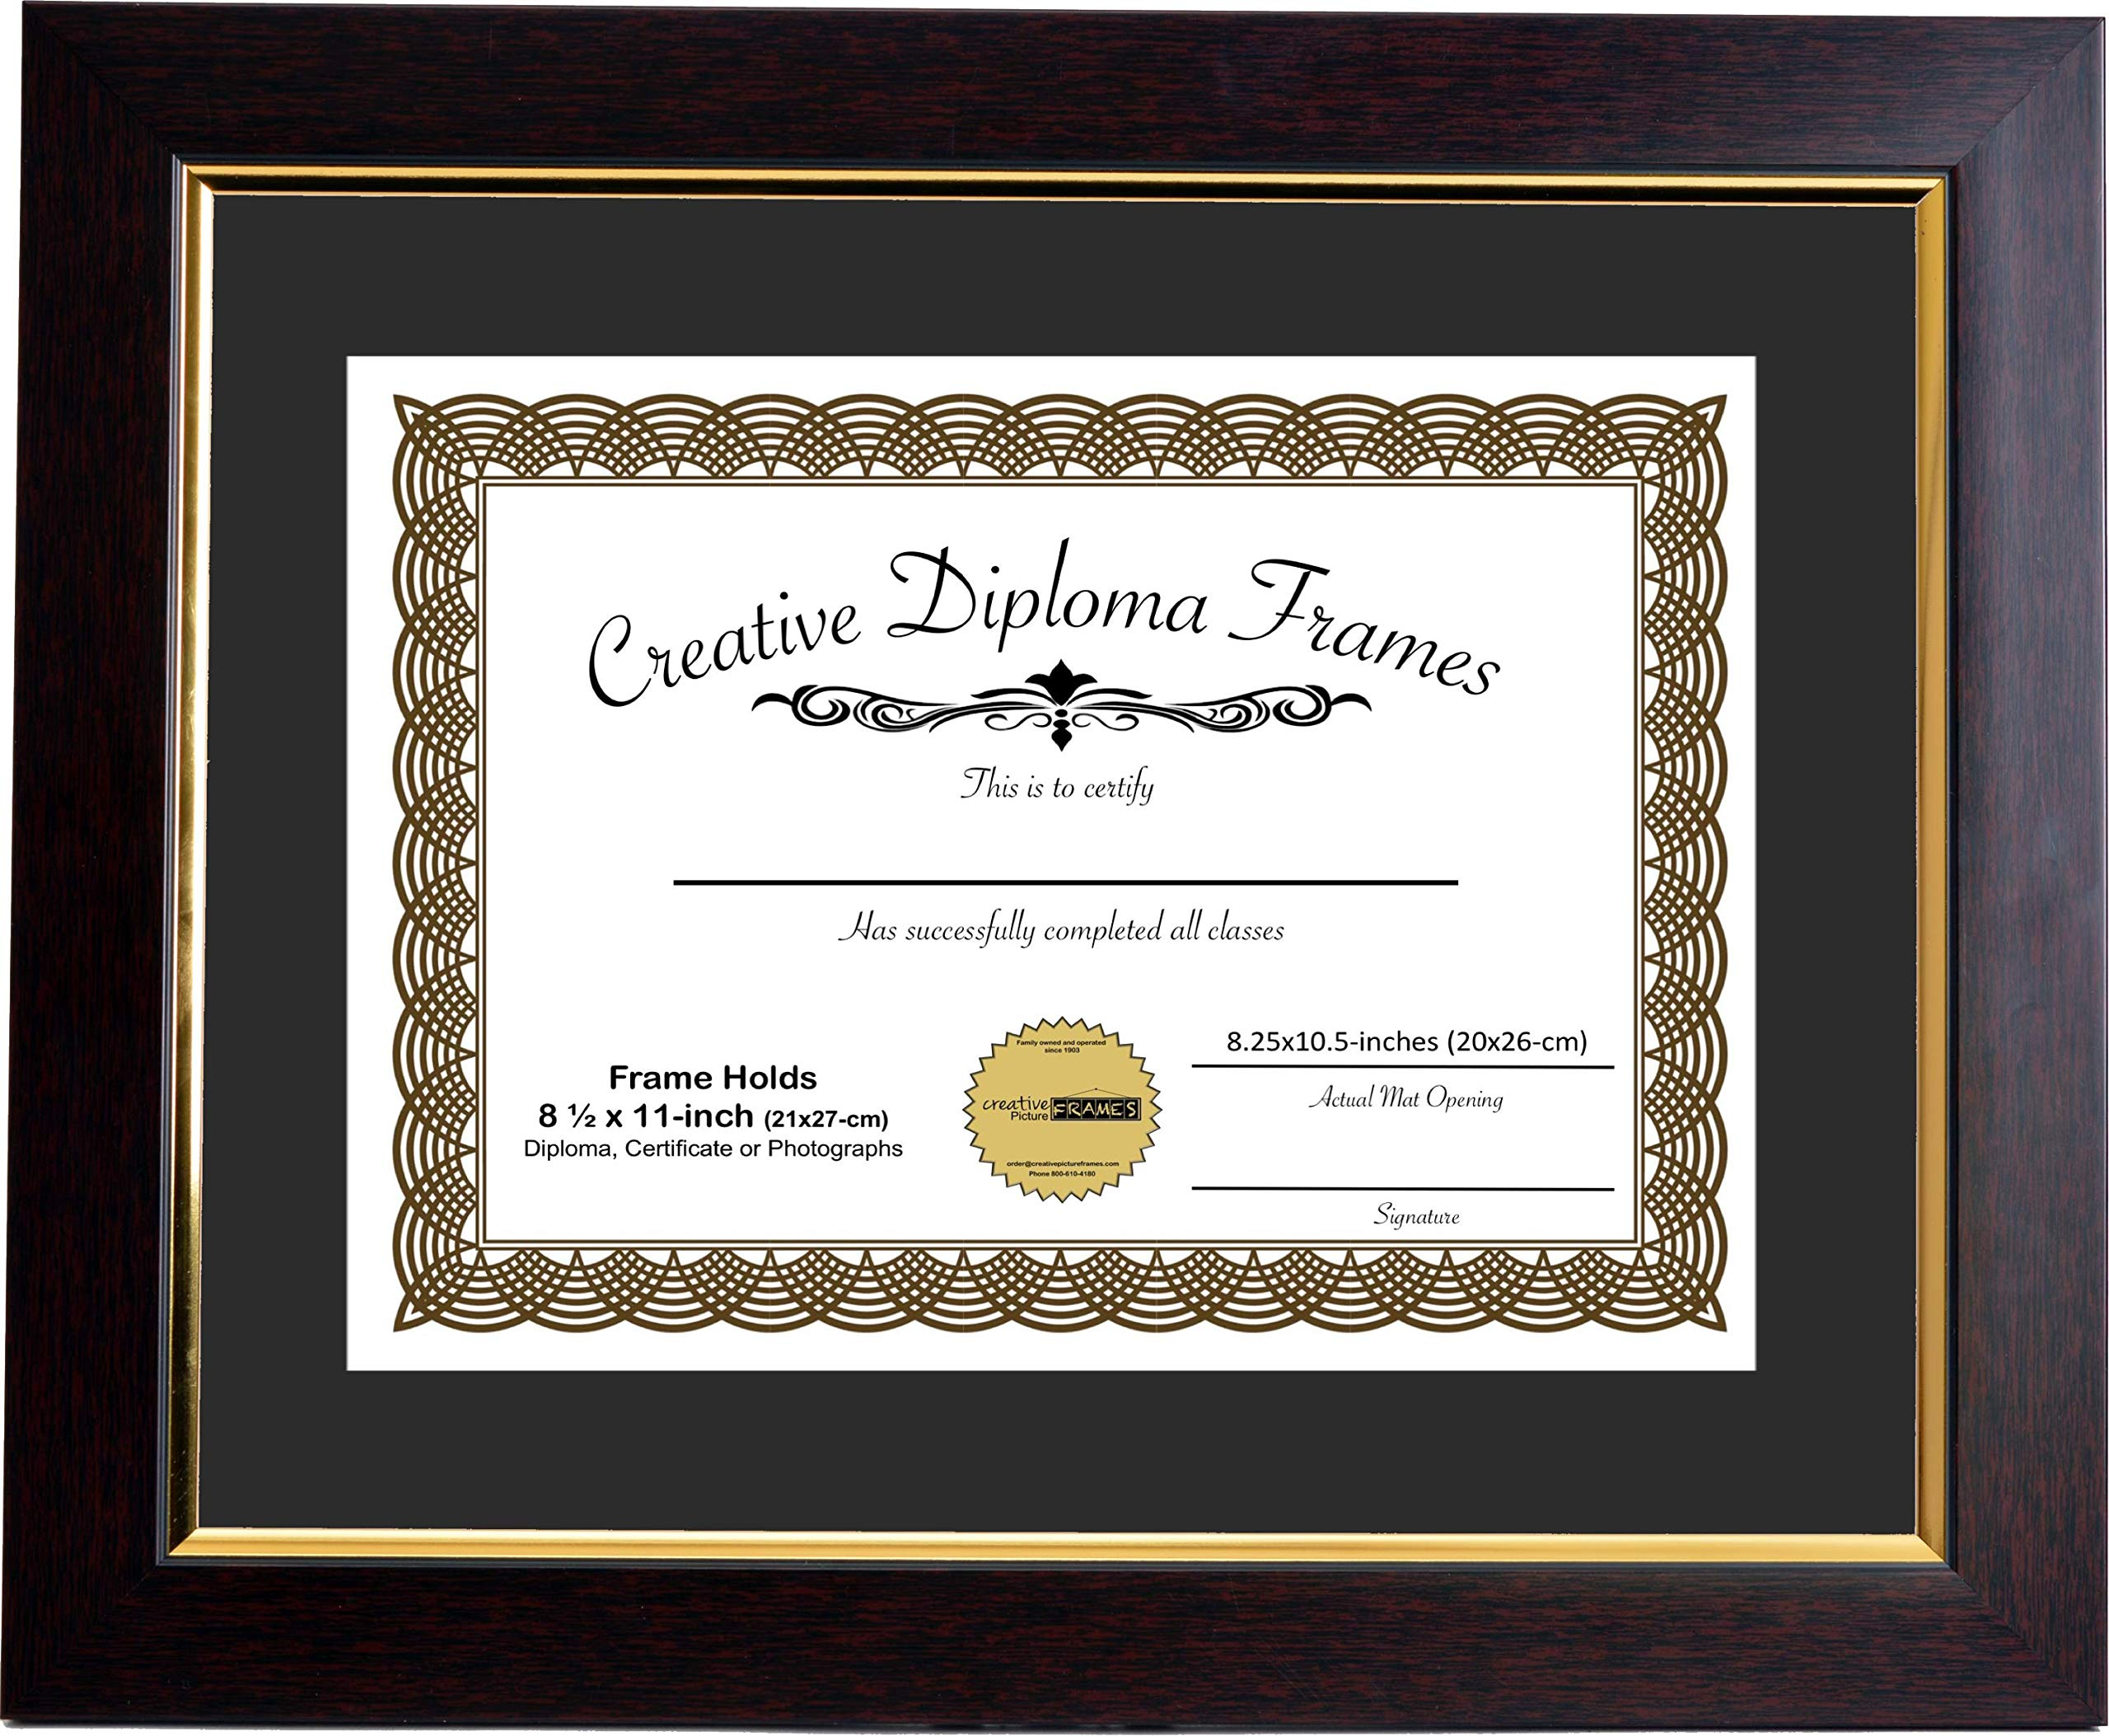 CreativePF [mhg024] 11x14-inch Matted Eco Mahogany Finish Diploma Frame Gold Lip with Black/White Core Mat Holds 8.5x11-inch Media, with Installed Hangers